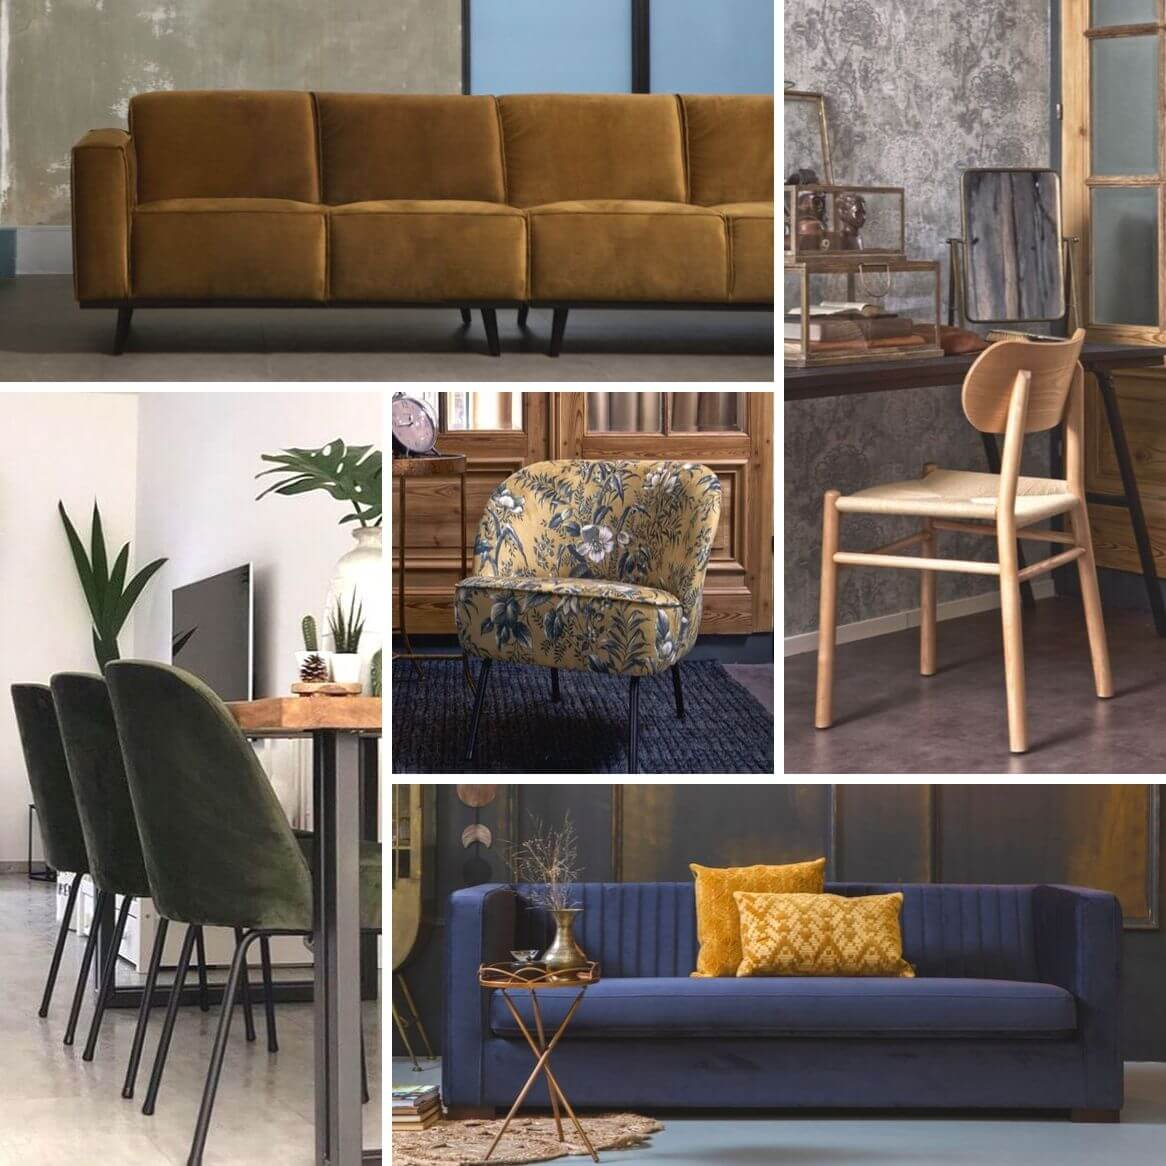 bepurehome design hollandais zeeblog zeeloft